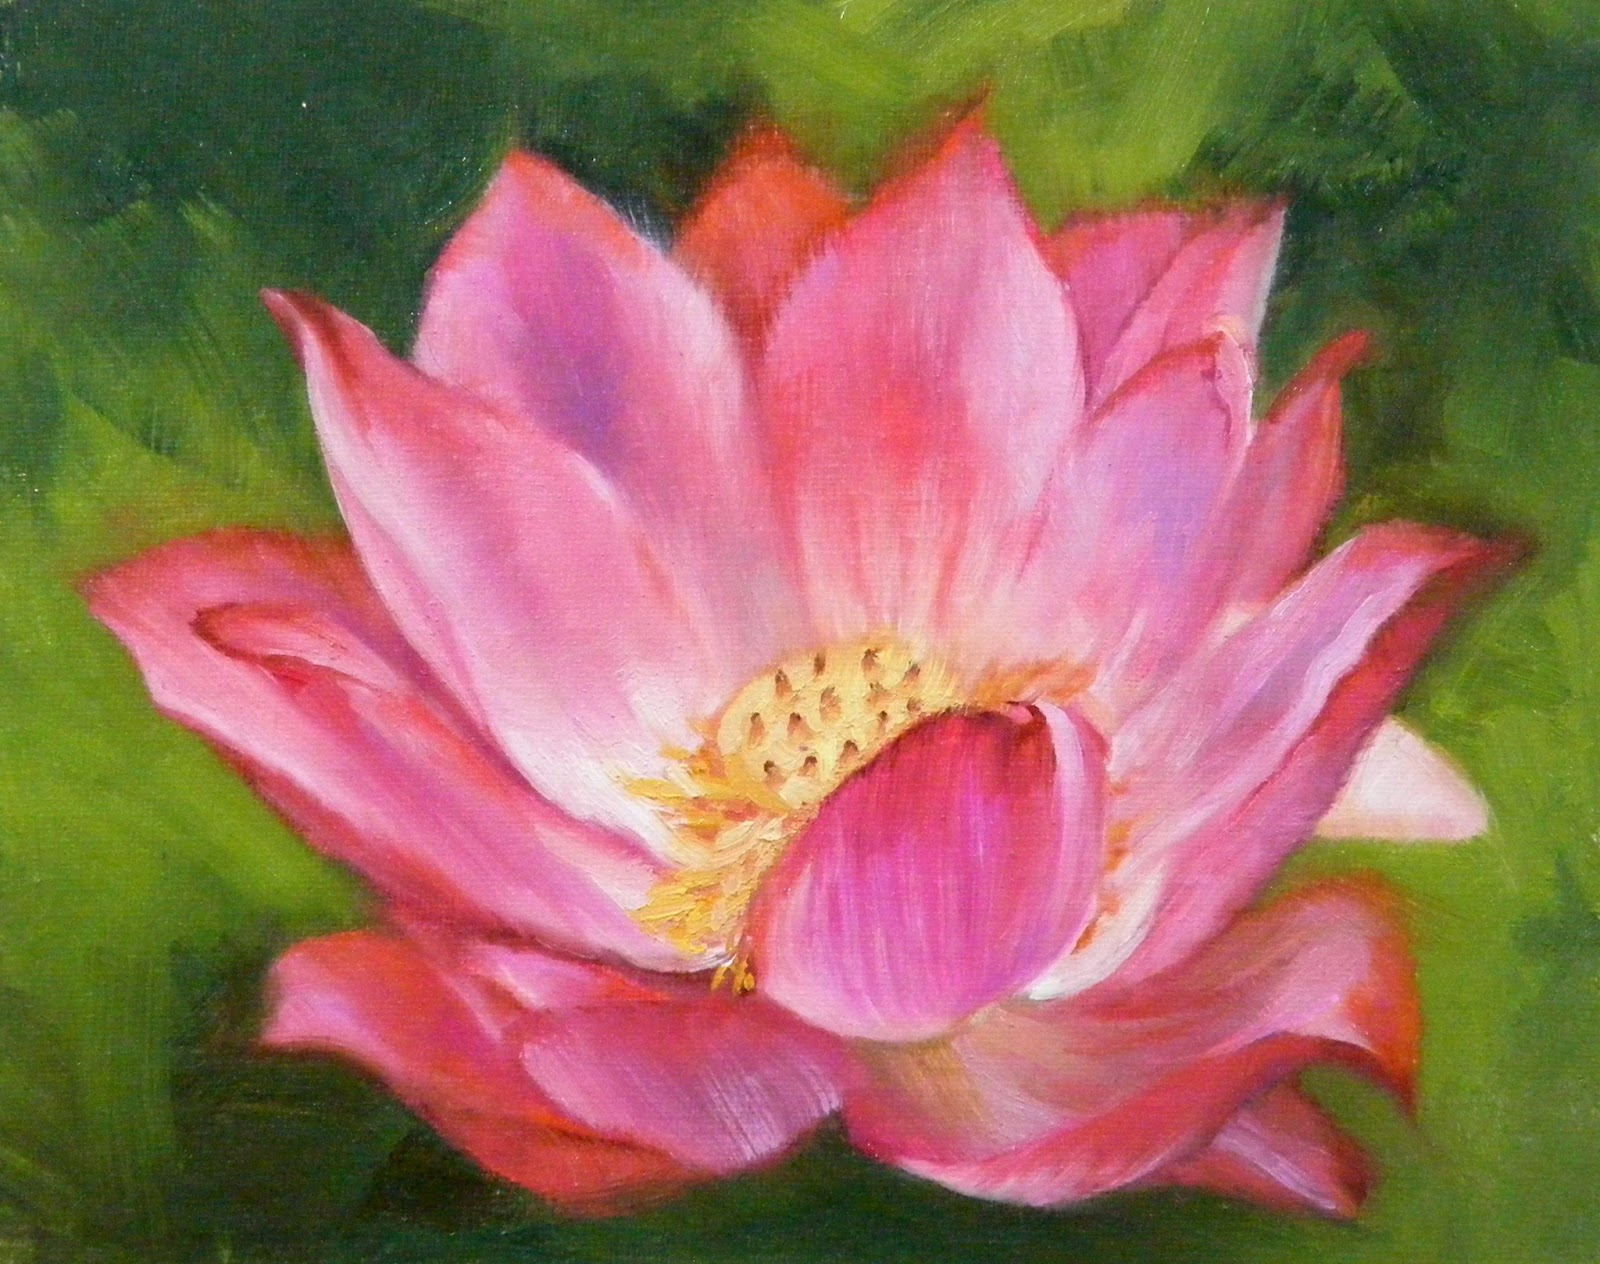 Lotus flower study 1 floral diana delander paintings lotus flower study 1 floral izmirmasajfo